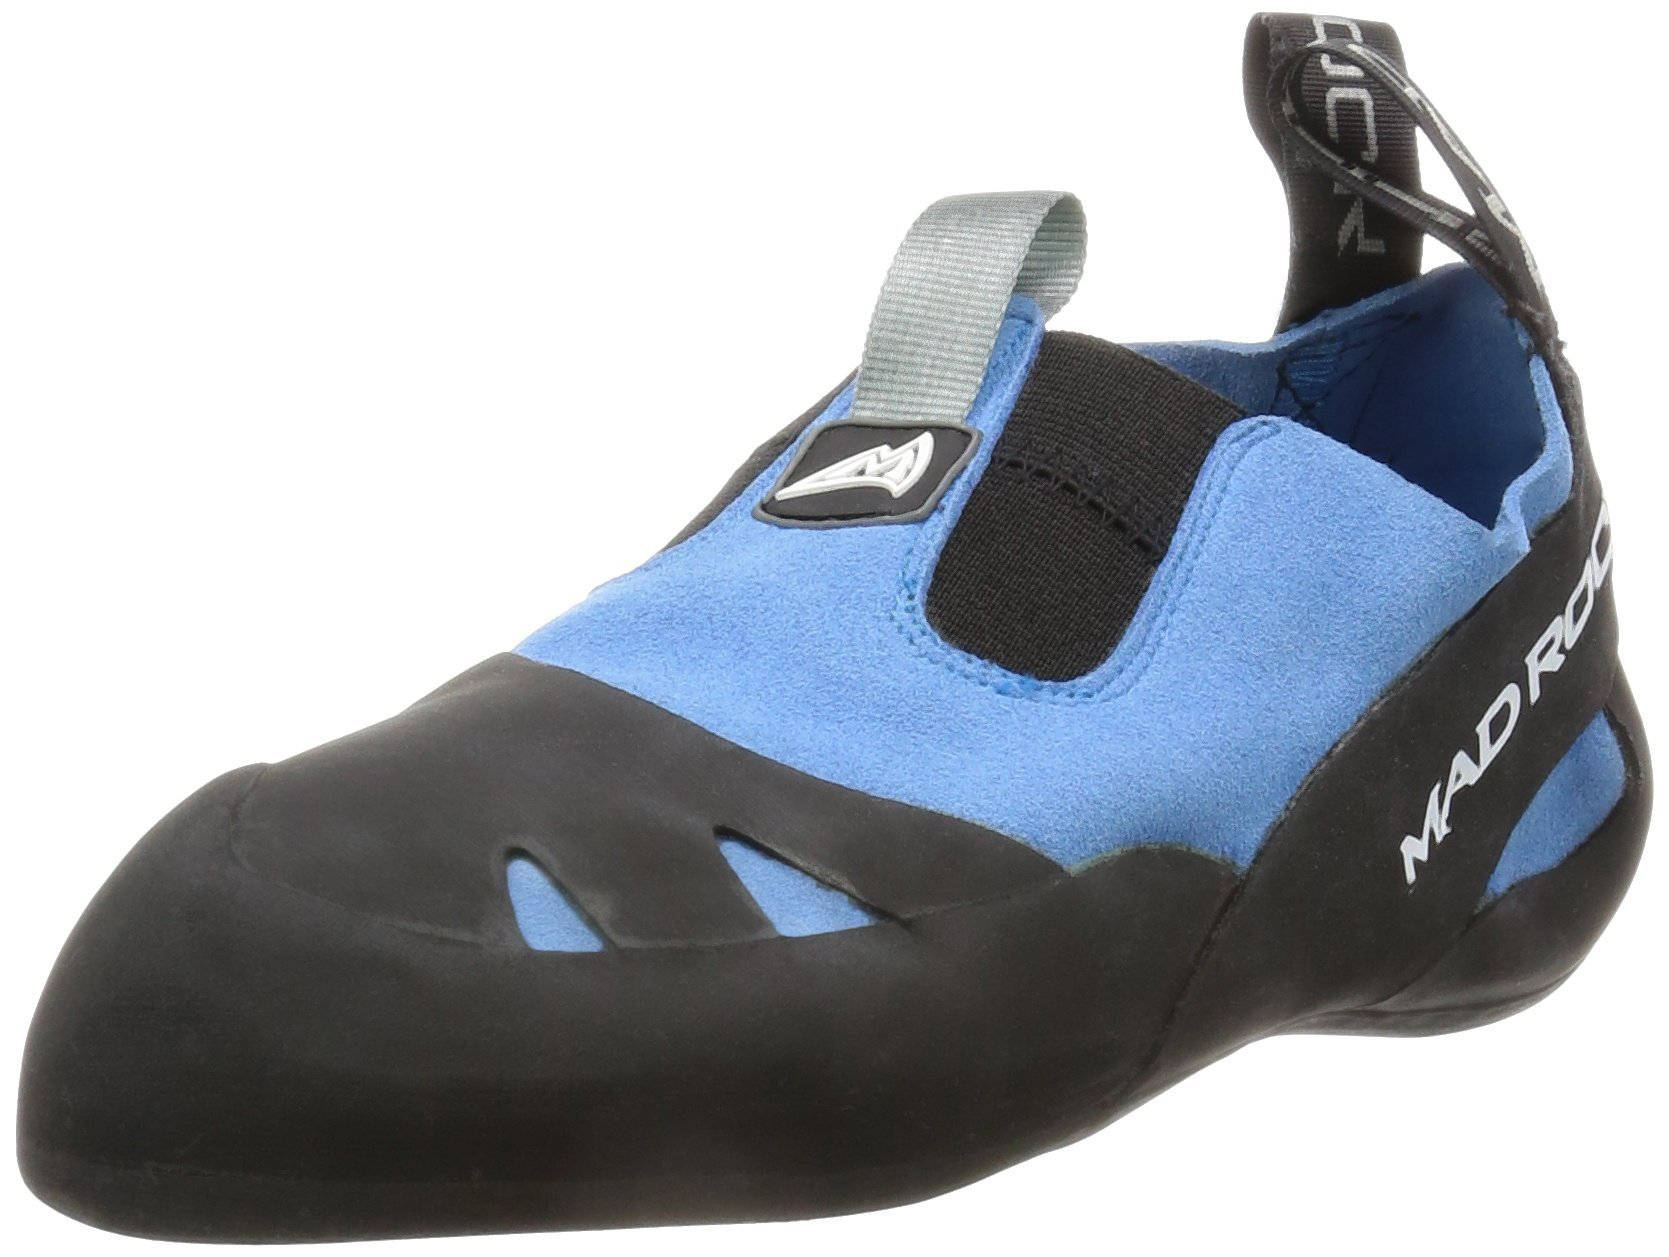 Mad Rock Remora Climbing Shoe - Men's Blue 8.5 by Mad Rock